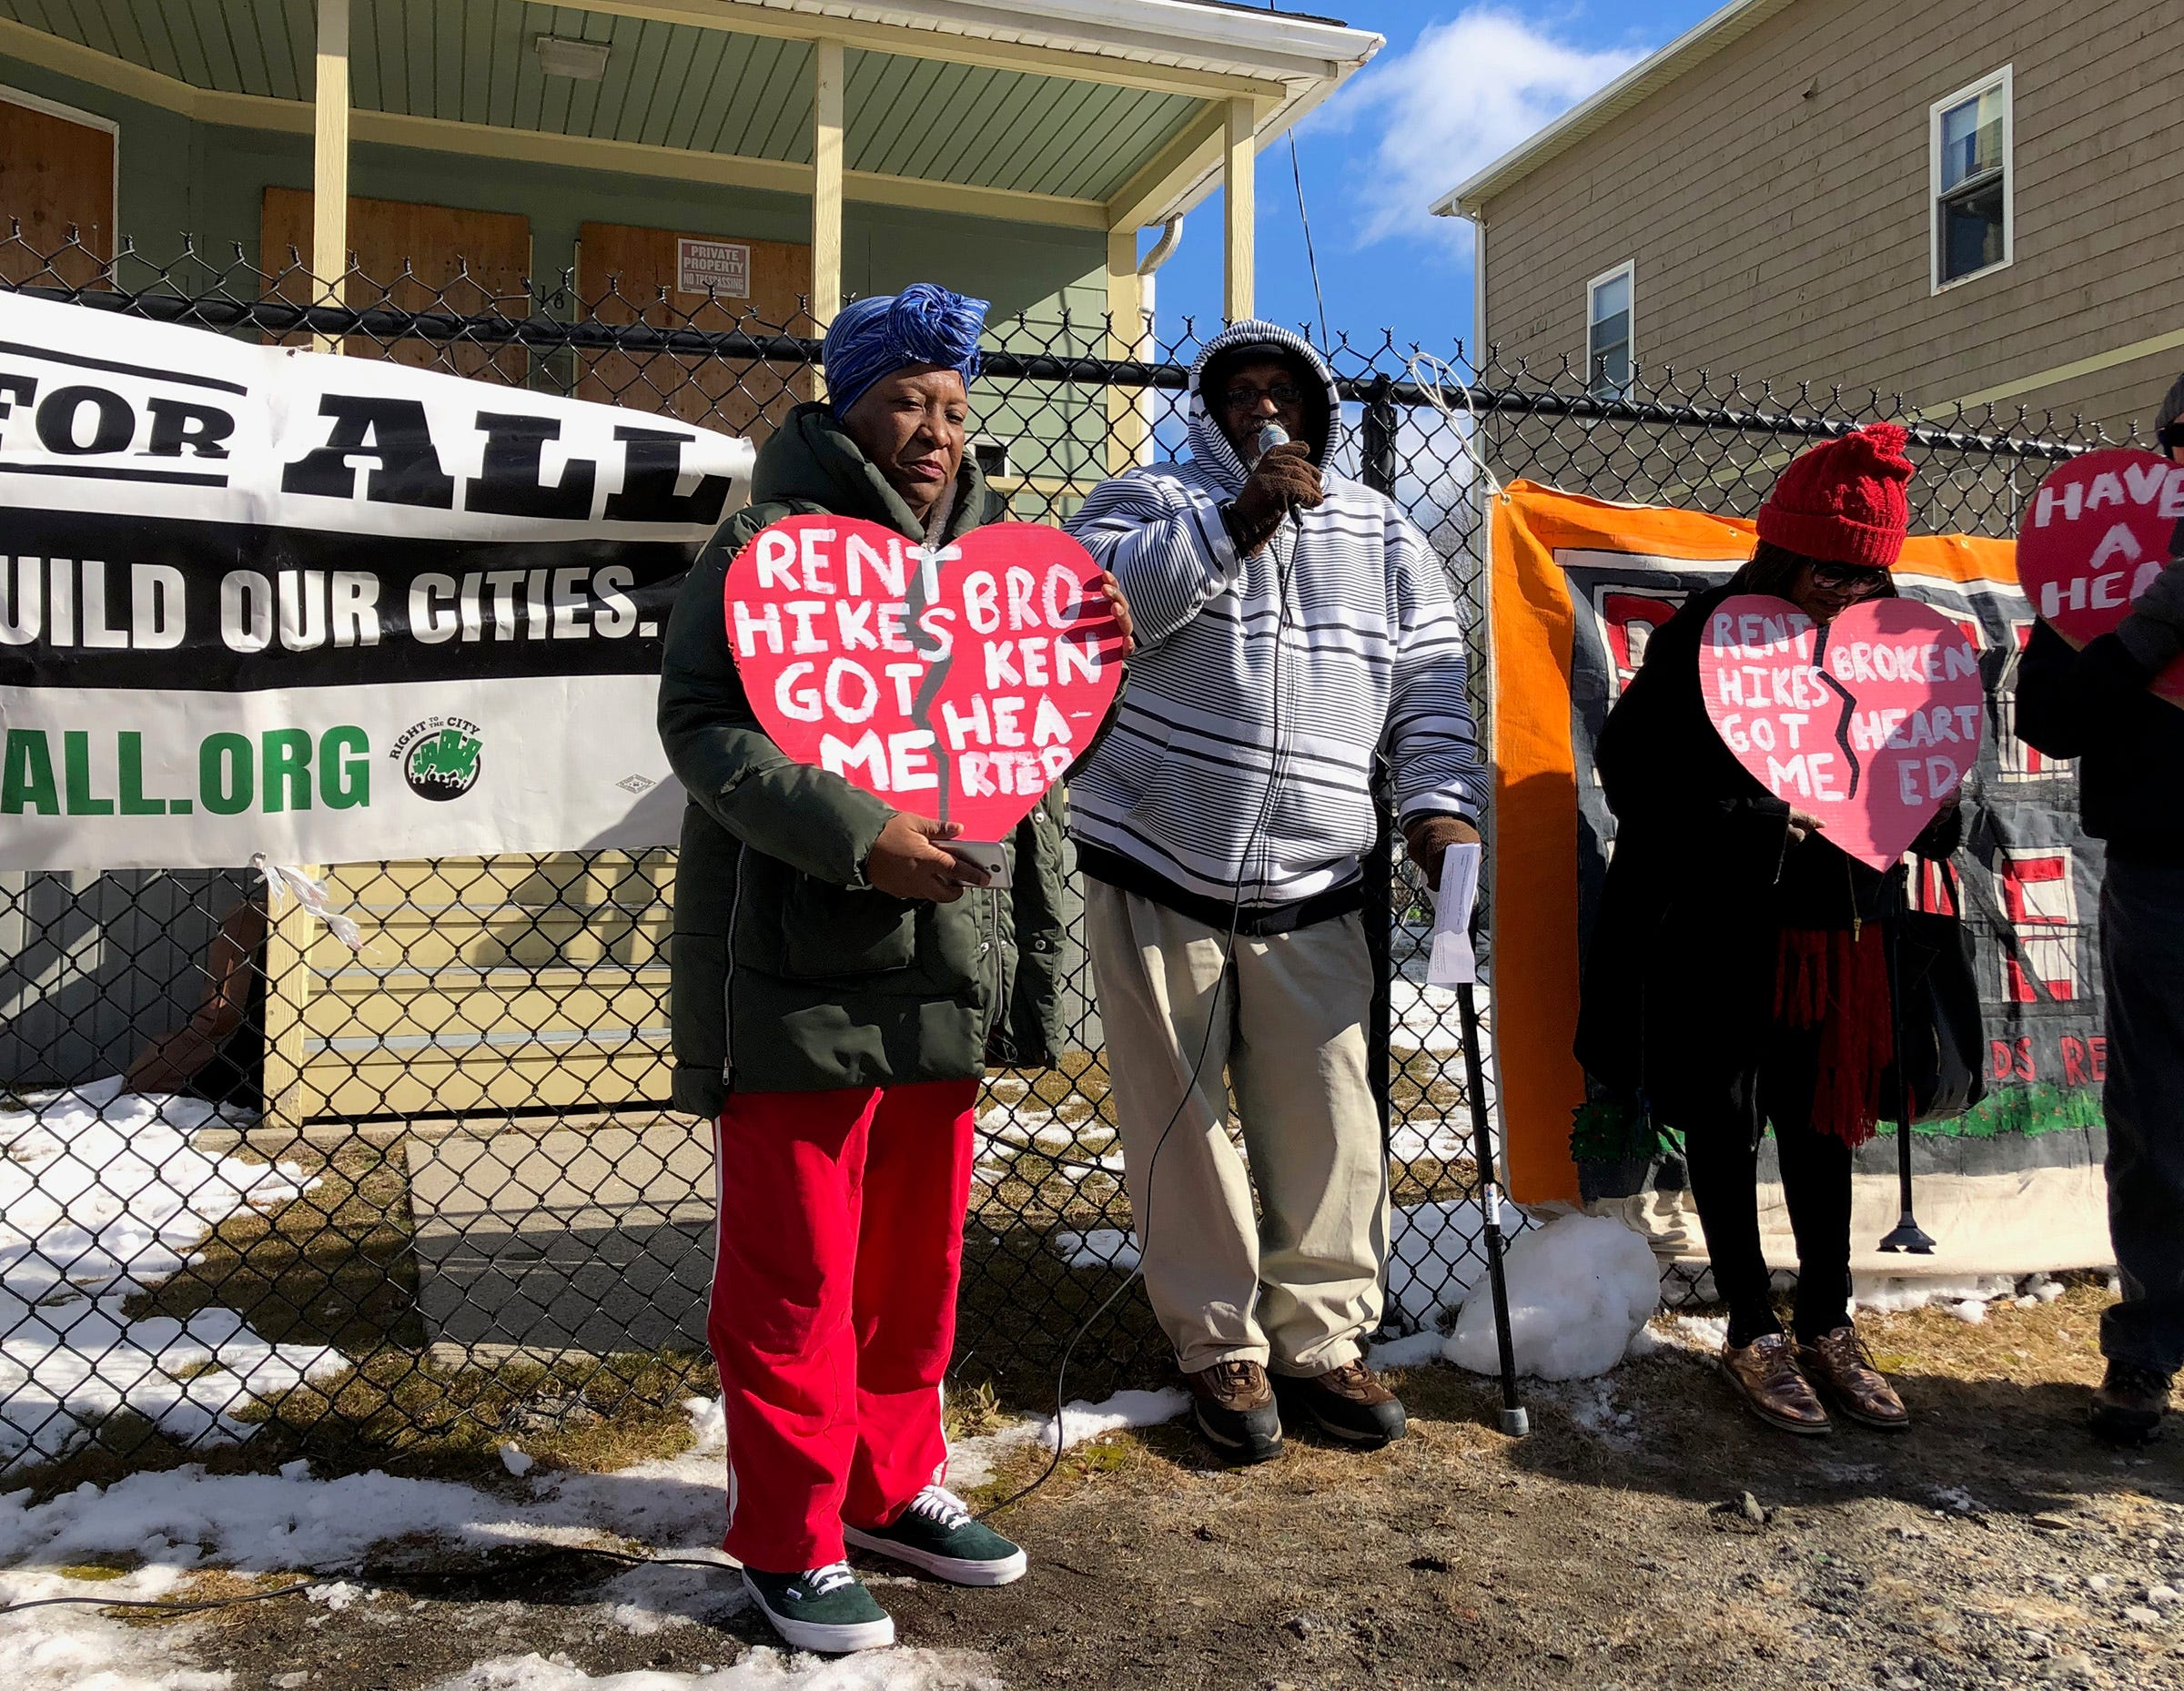 Affordable-housing advocates rally outside the vacant Barbara Jordan II apartments in South Providence in February 2019. The complex is being redeveloped through a housing fund created by the city later that year.